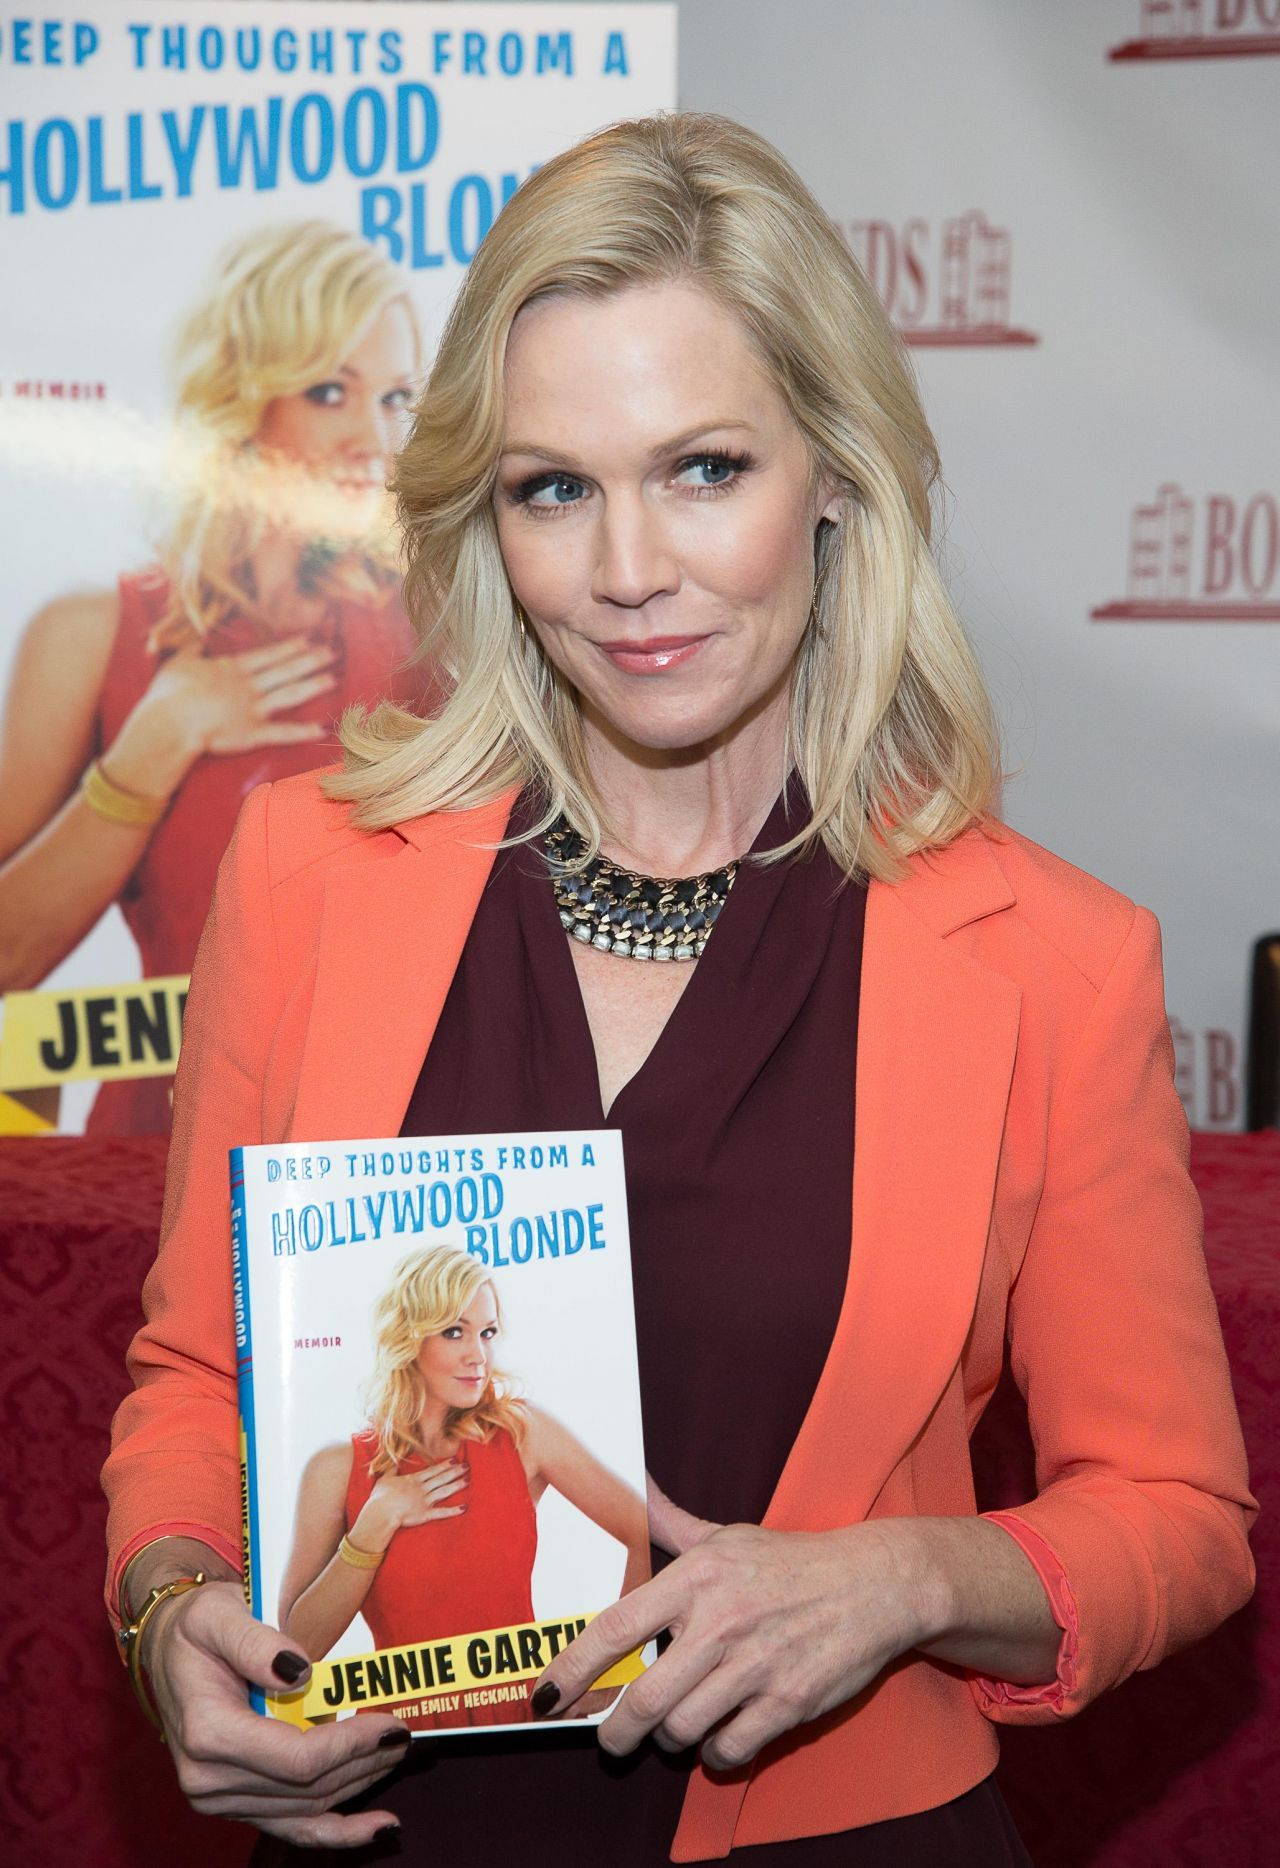 jennie garth instagram official